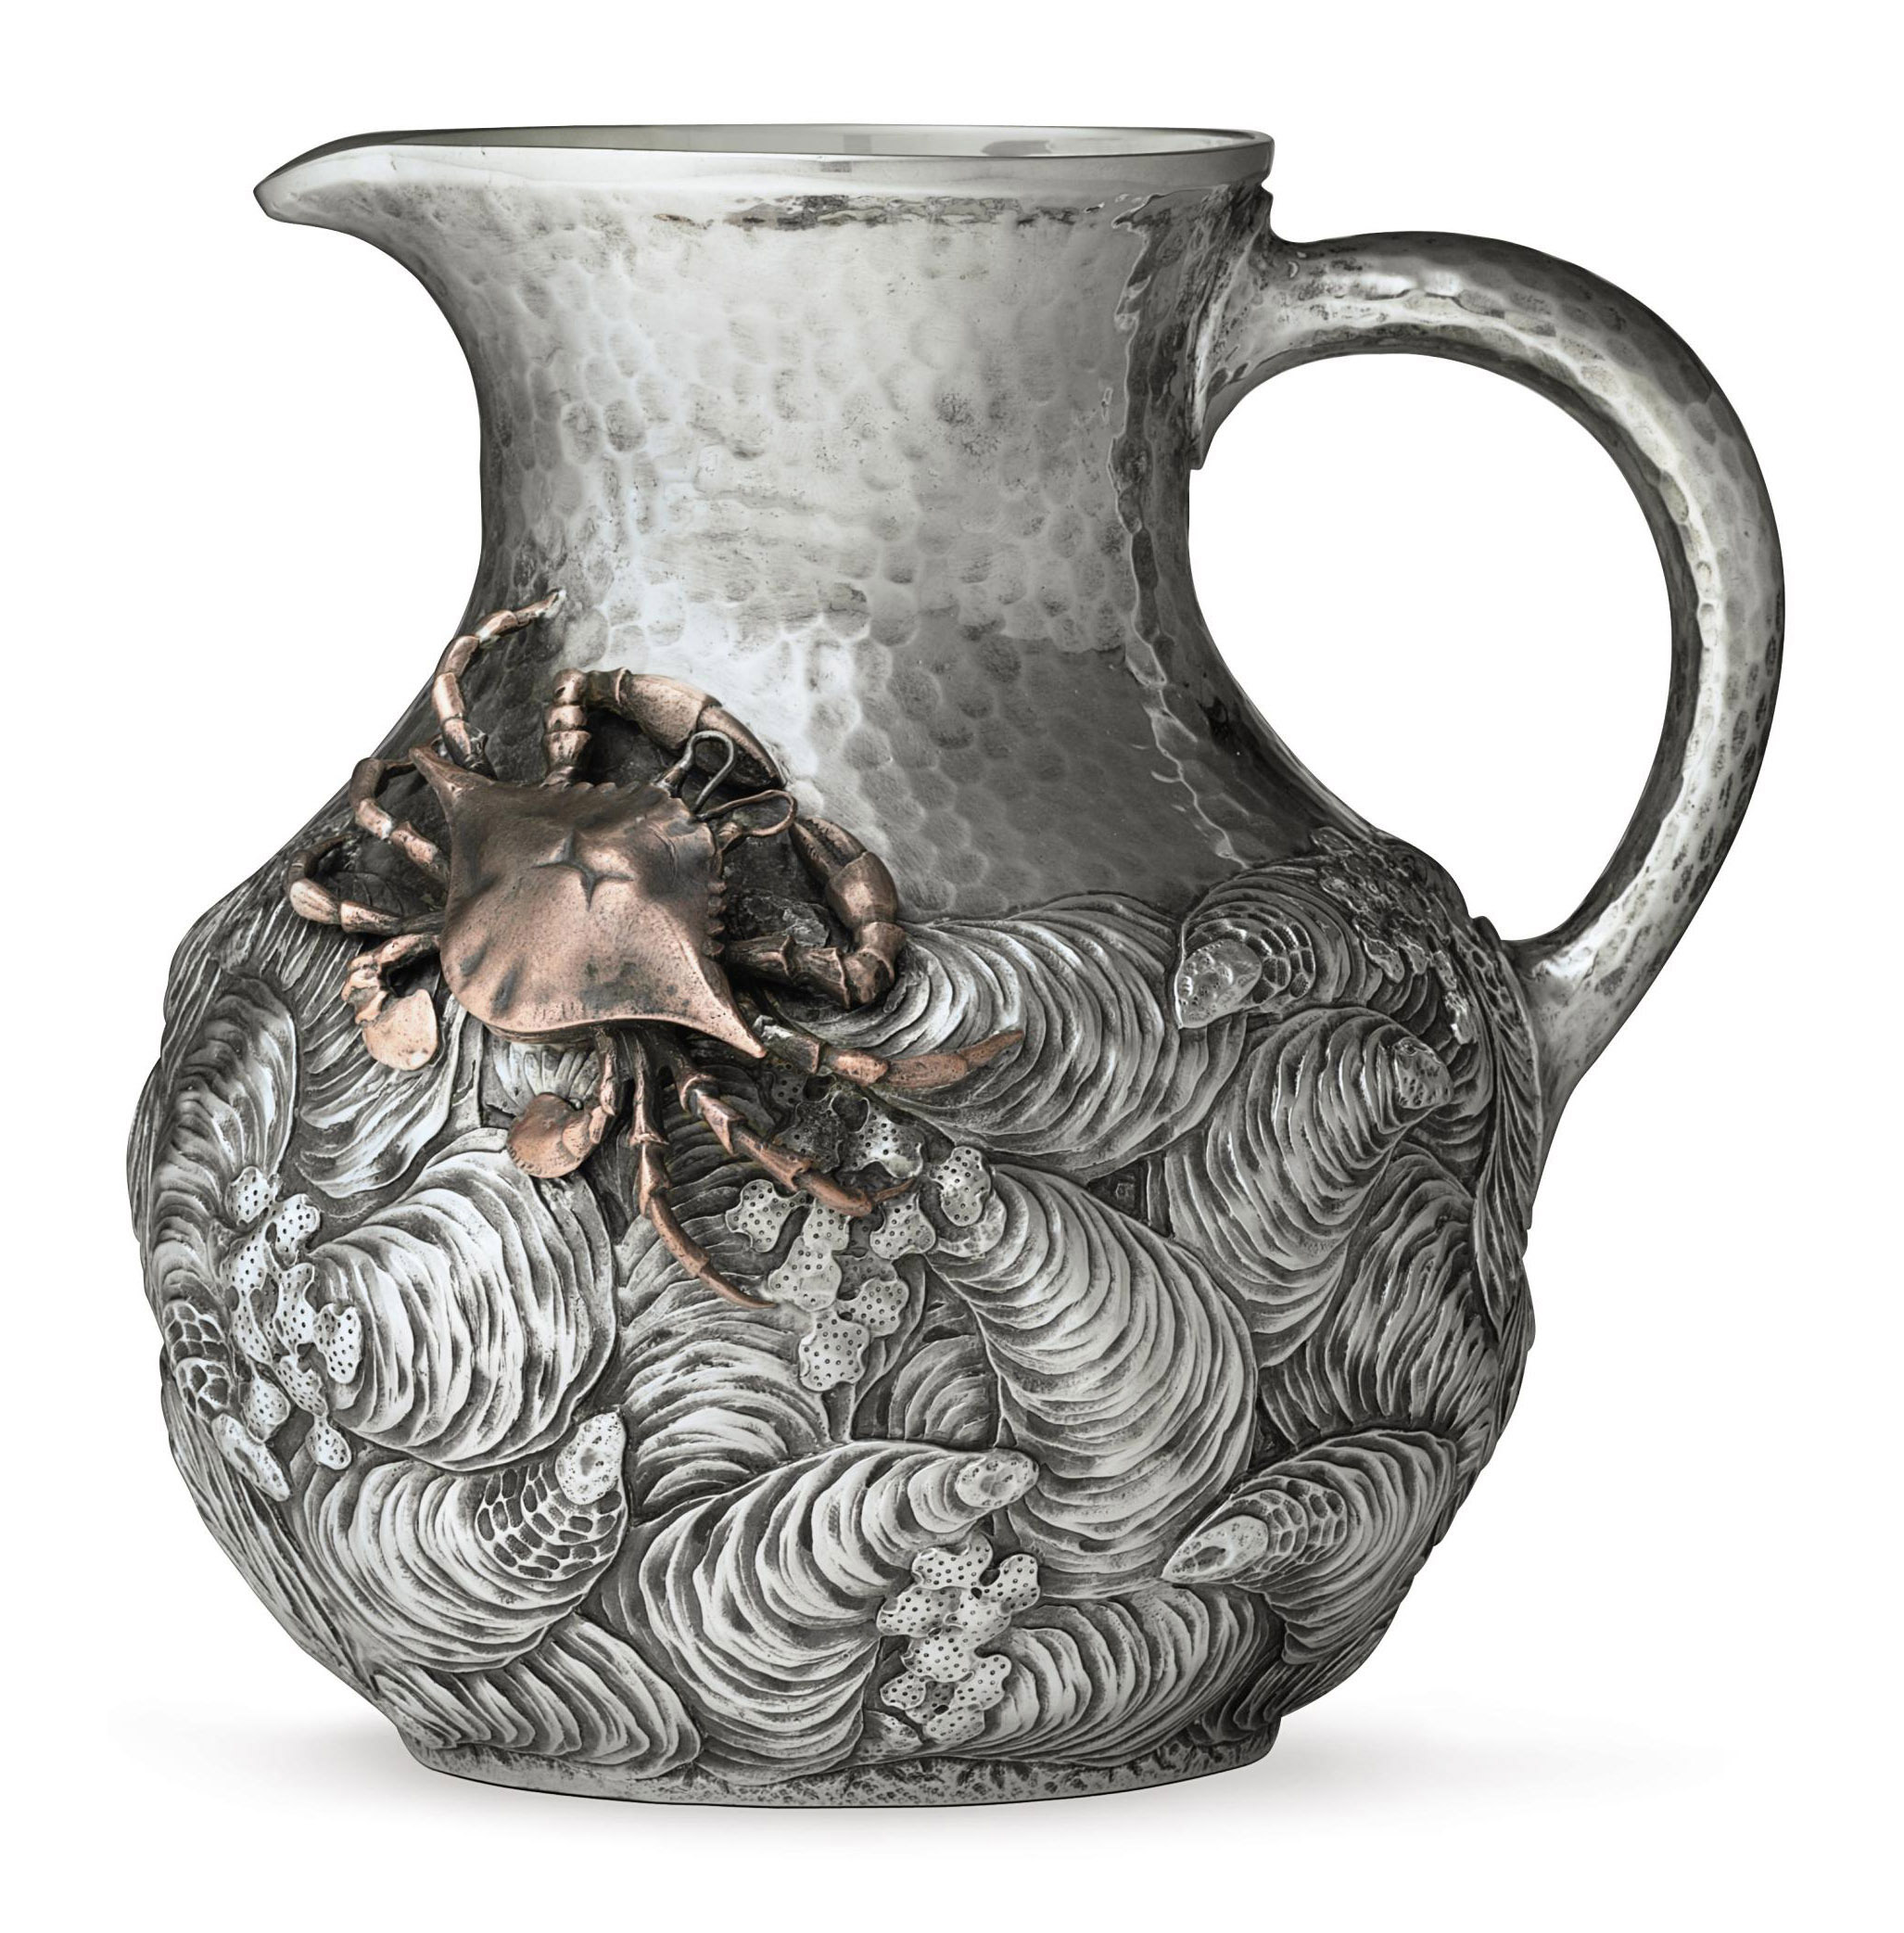 A SILVER AND MIXED-METAL WATER PITCHER